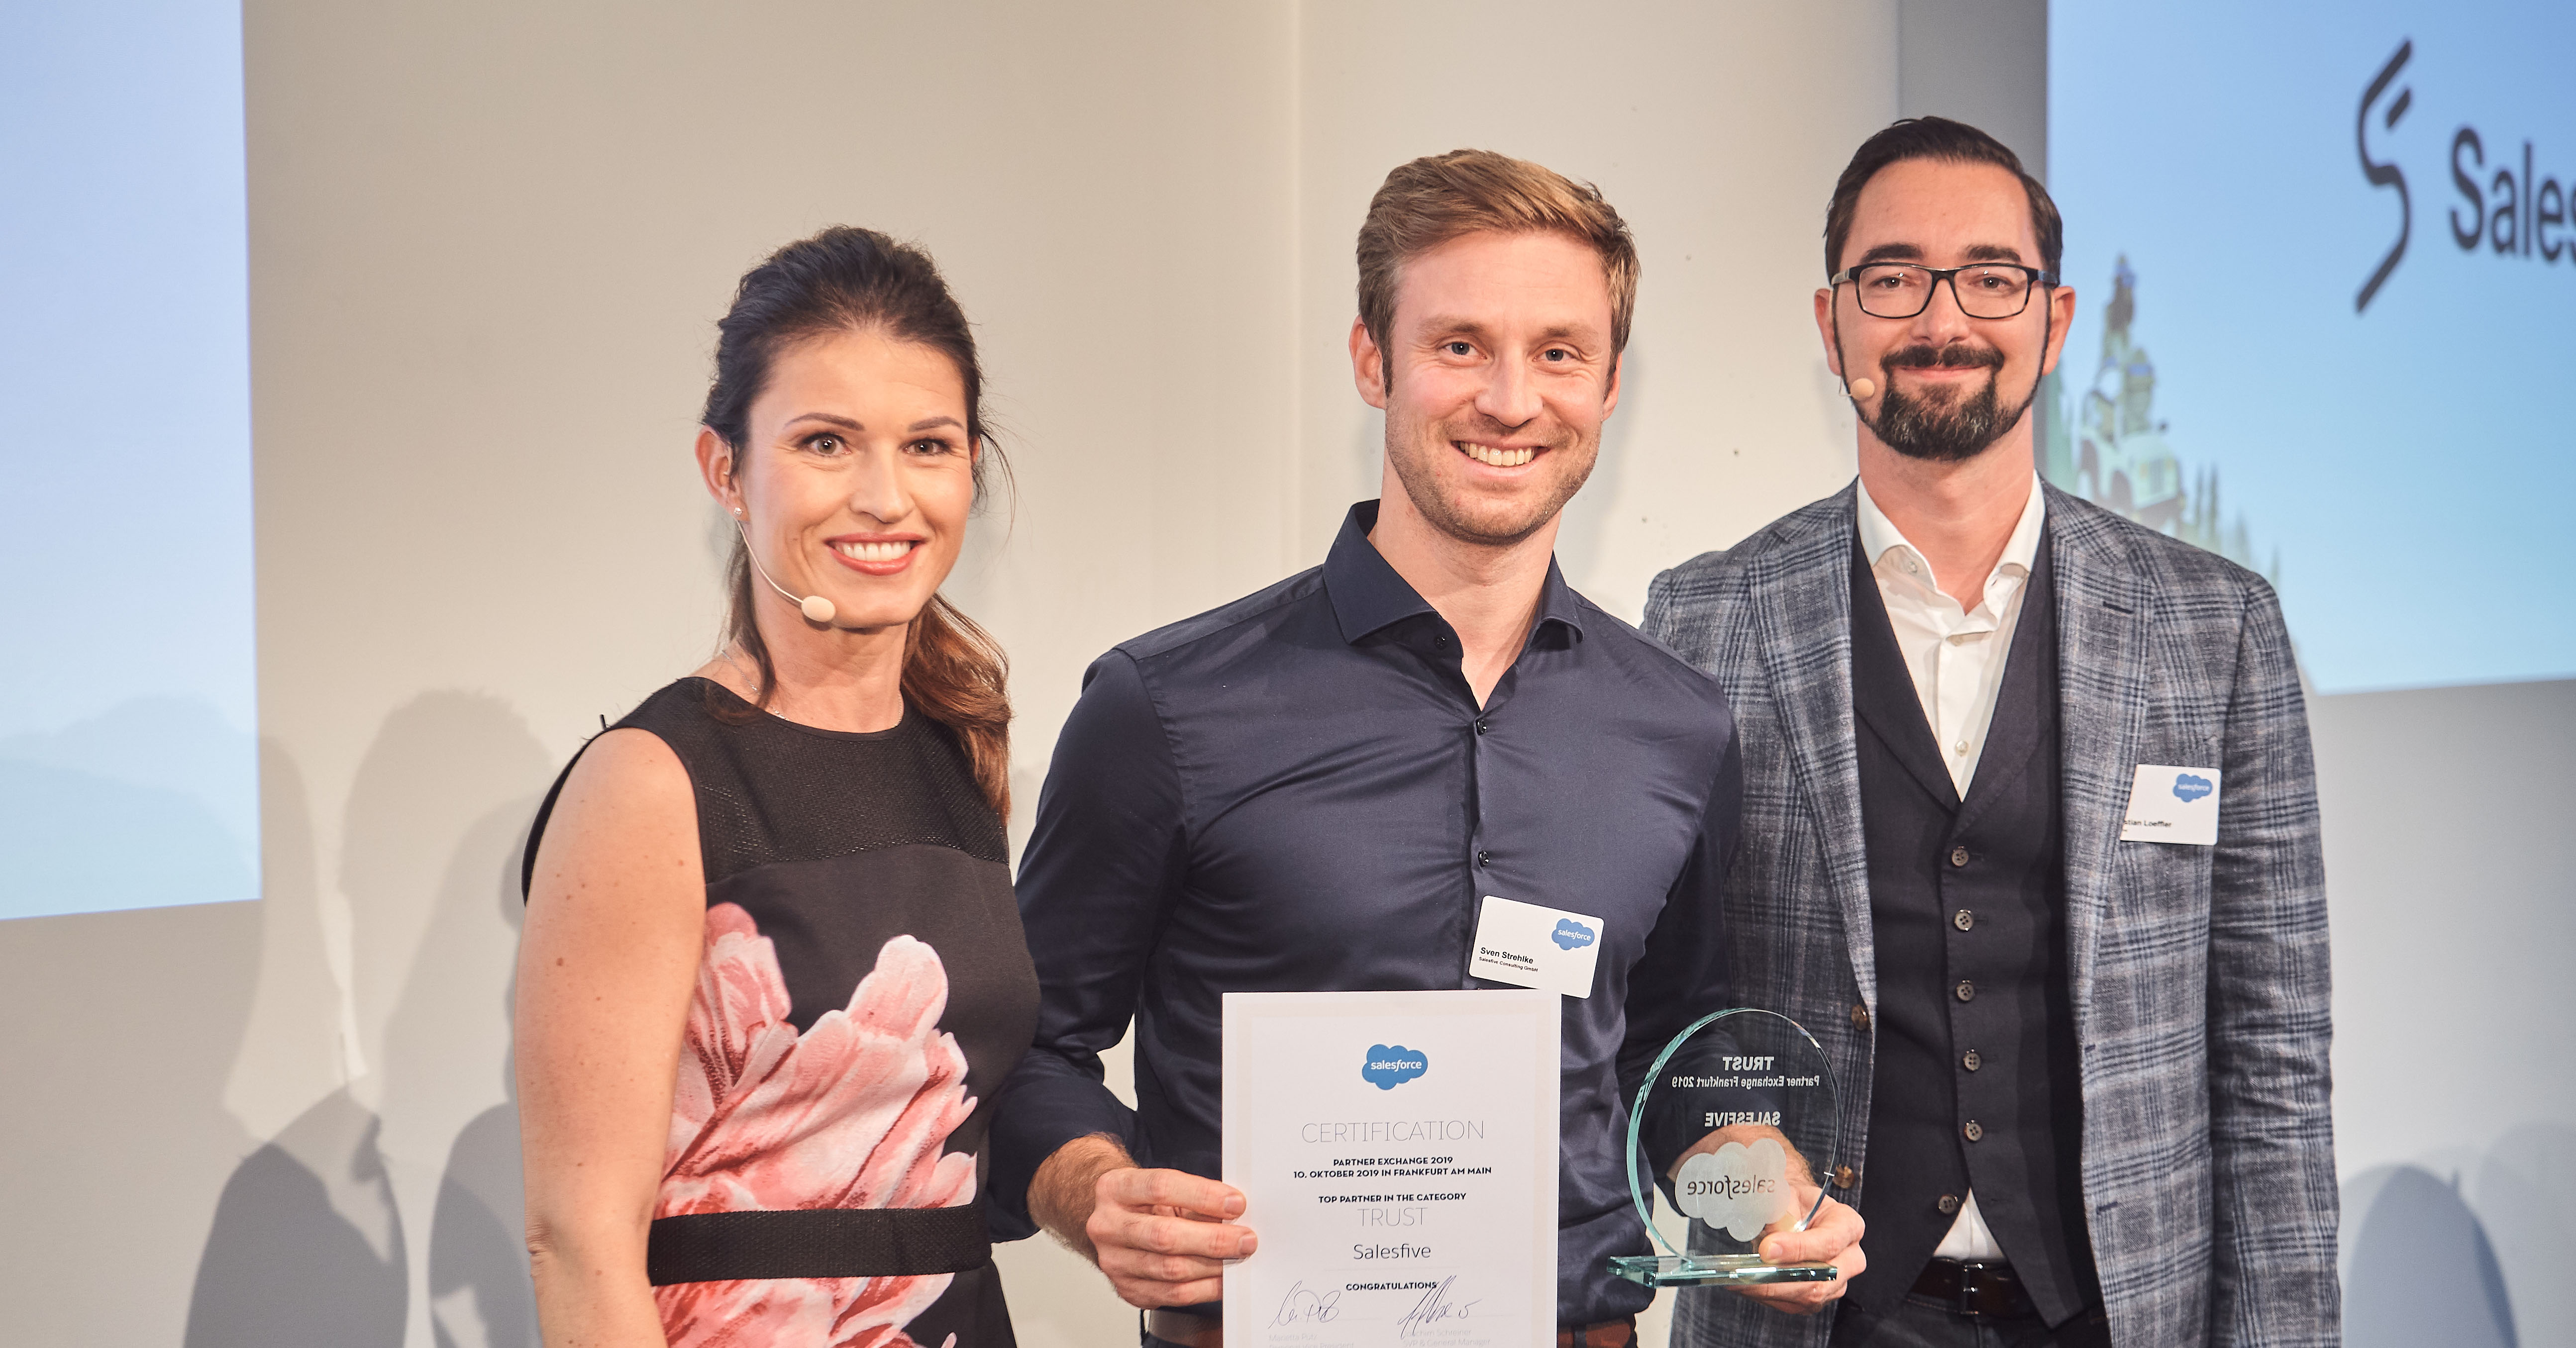 Salesforce Award Verleihung